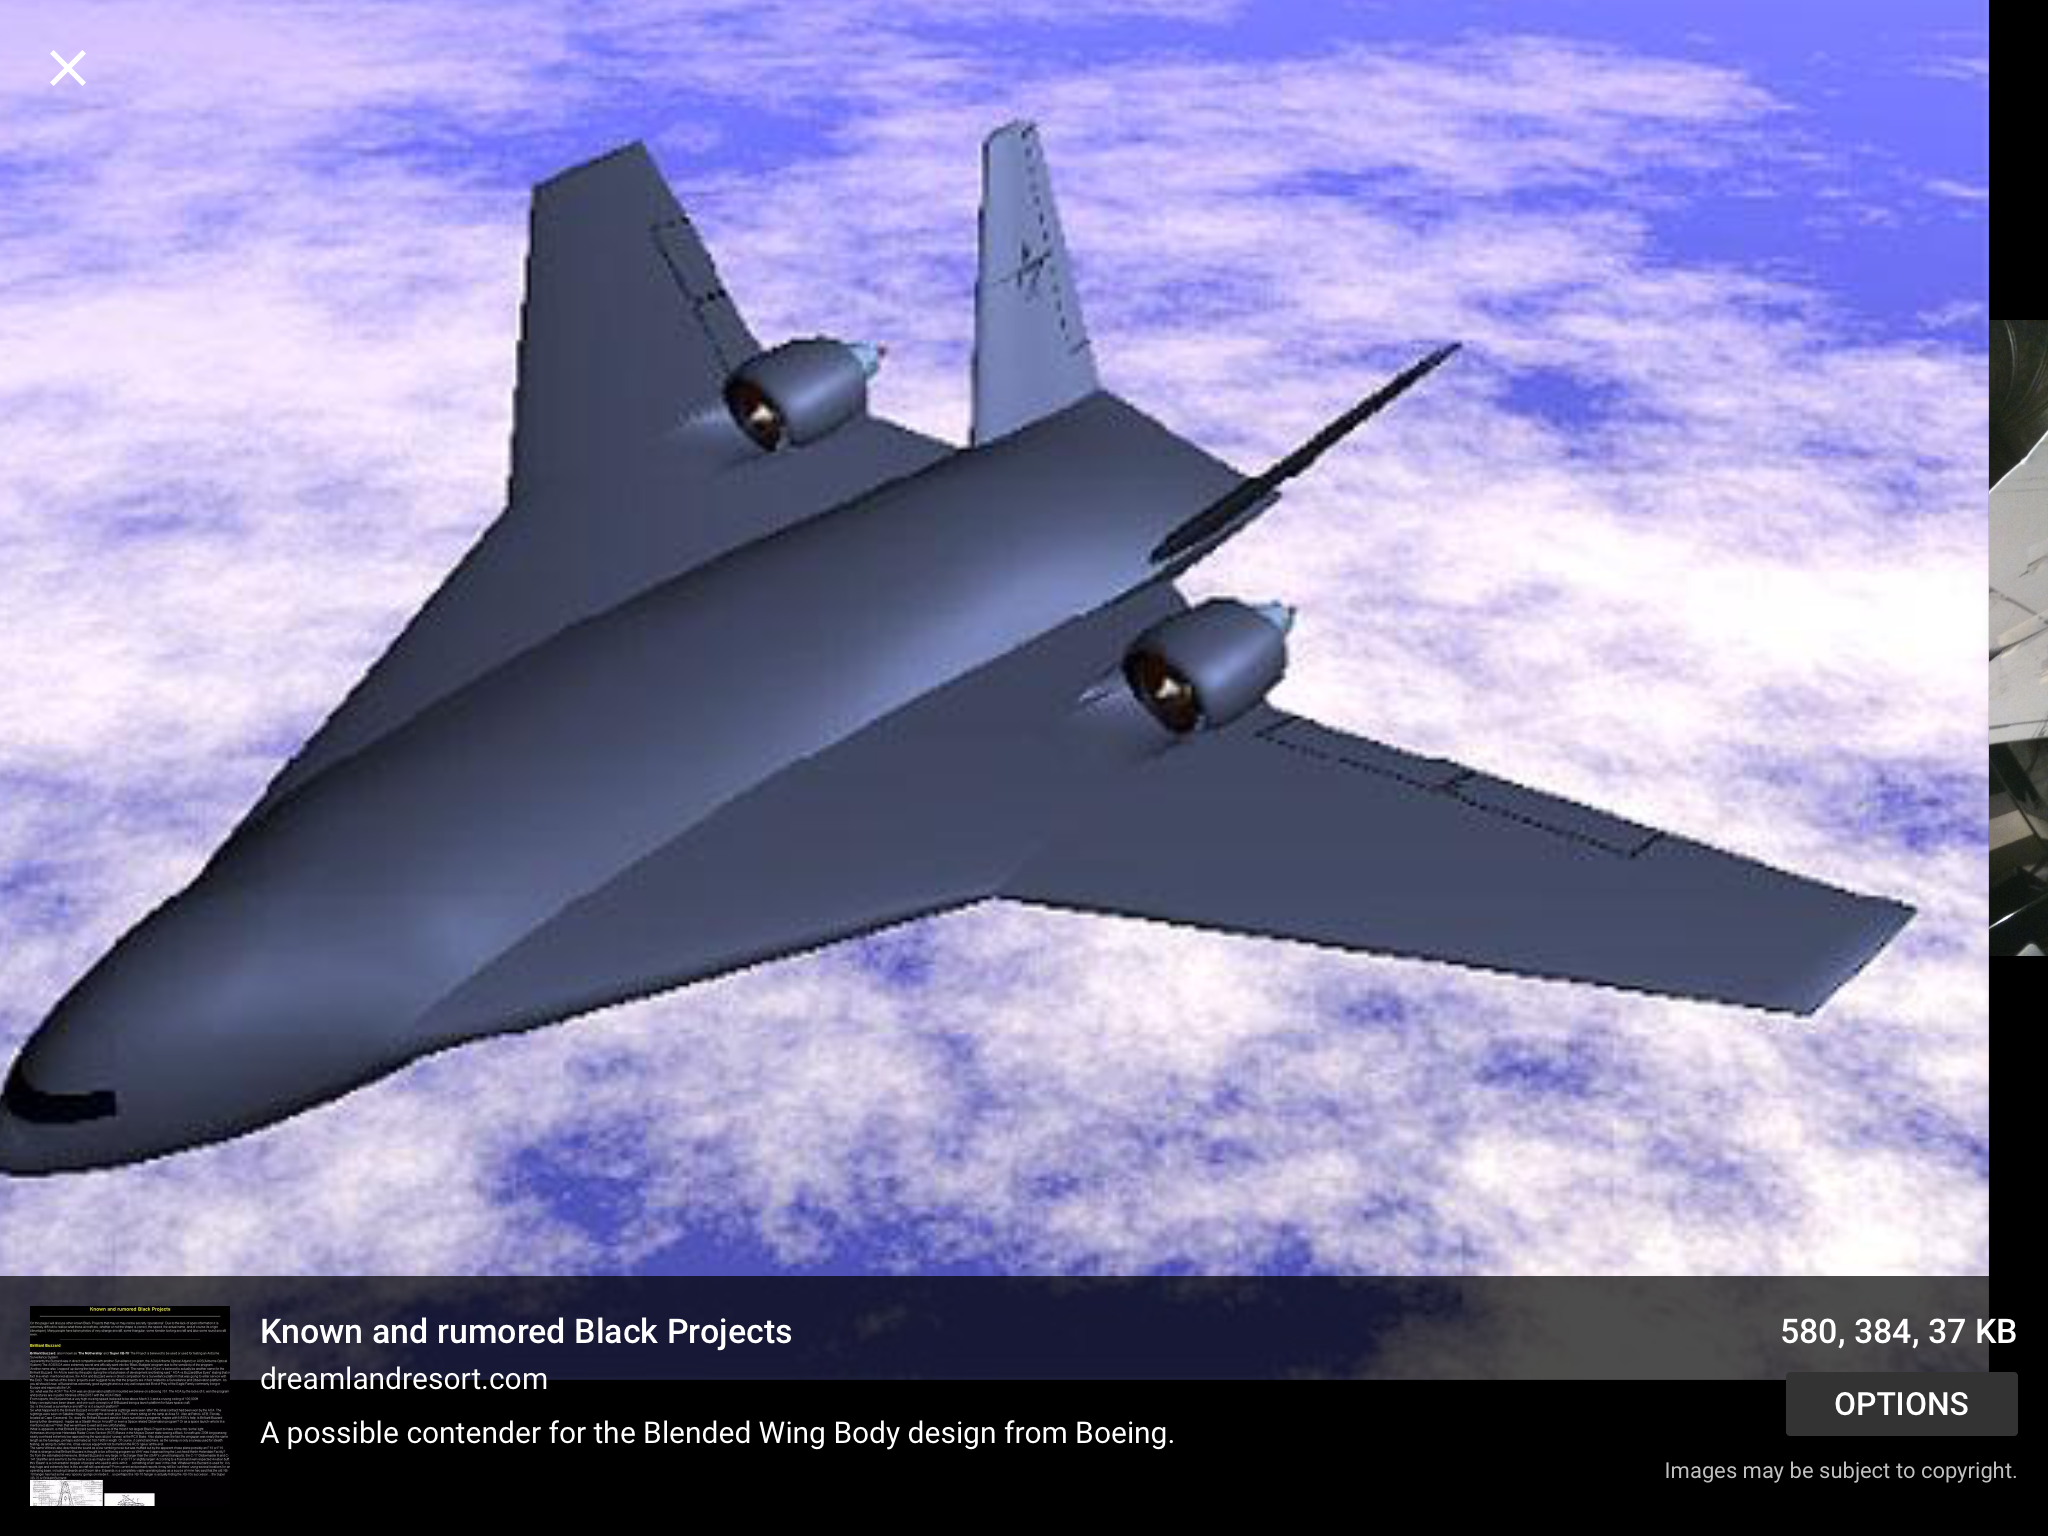 With the recent advances in technology and design aircraft concepts - Boeing Blended Wing Body Design Concept